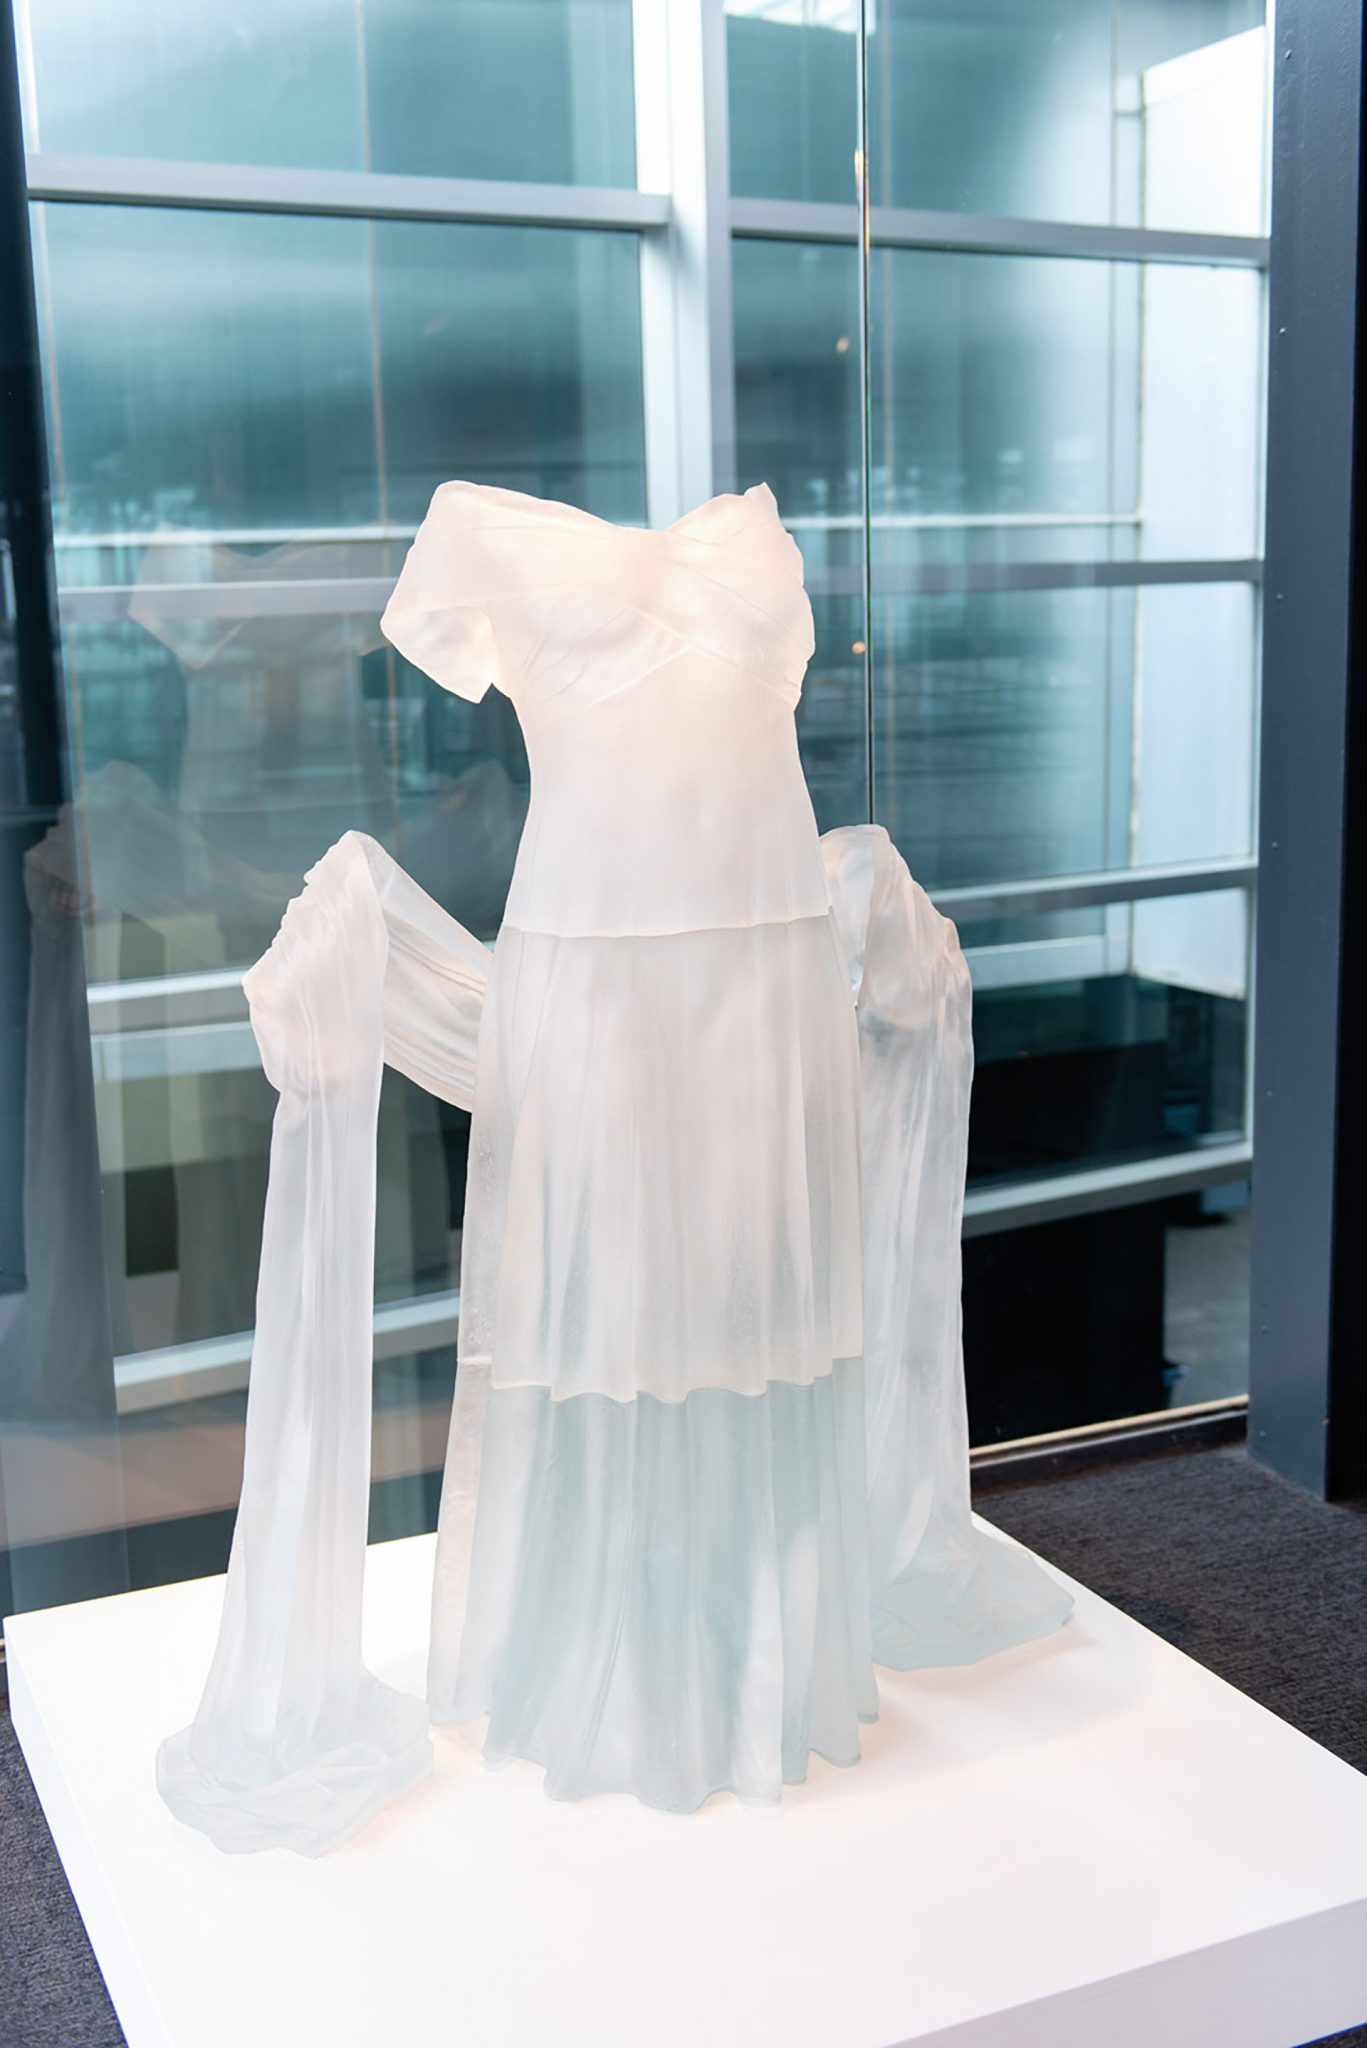 Glass dress at the Corning Museum of Glass